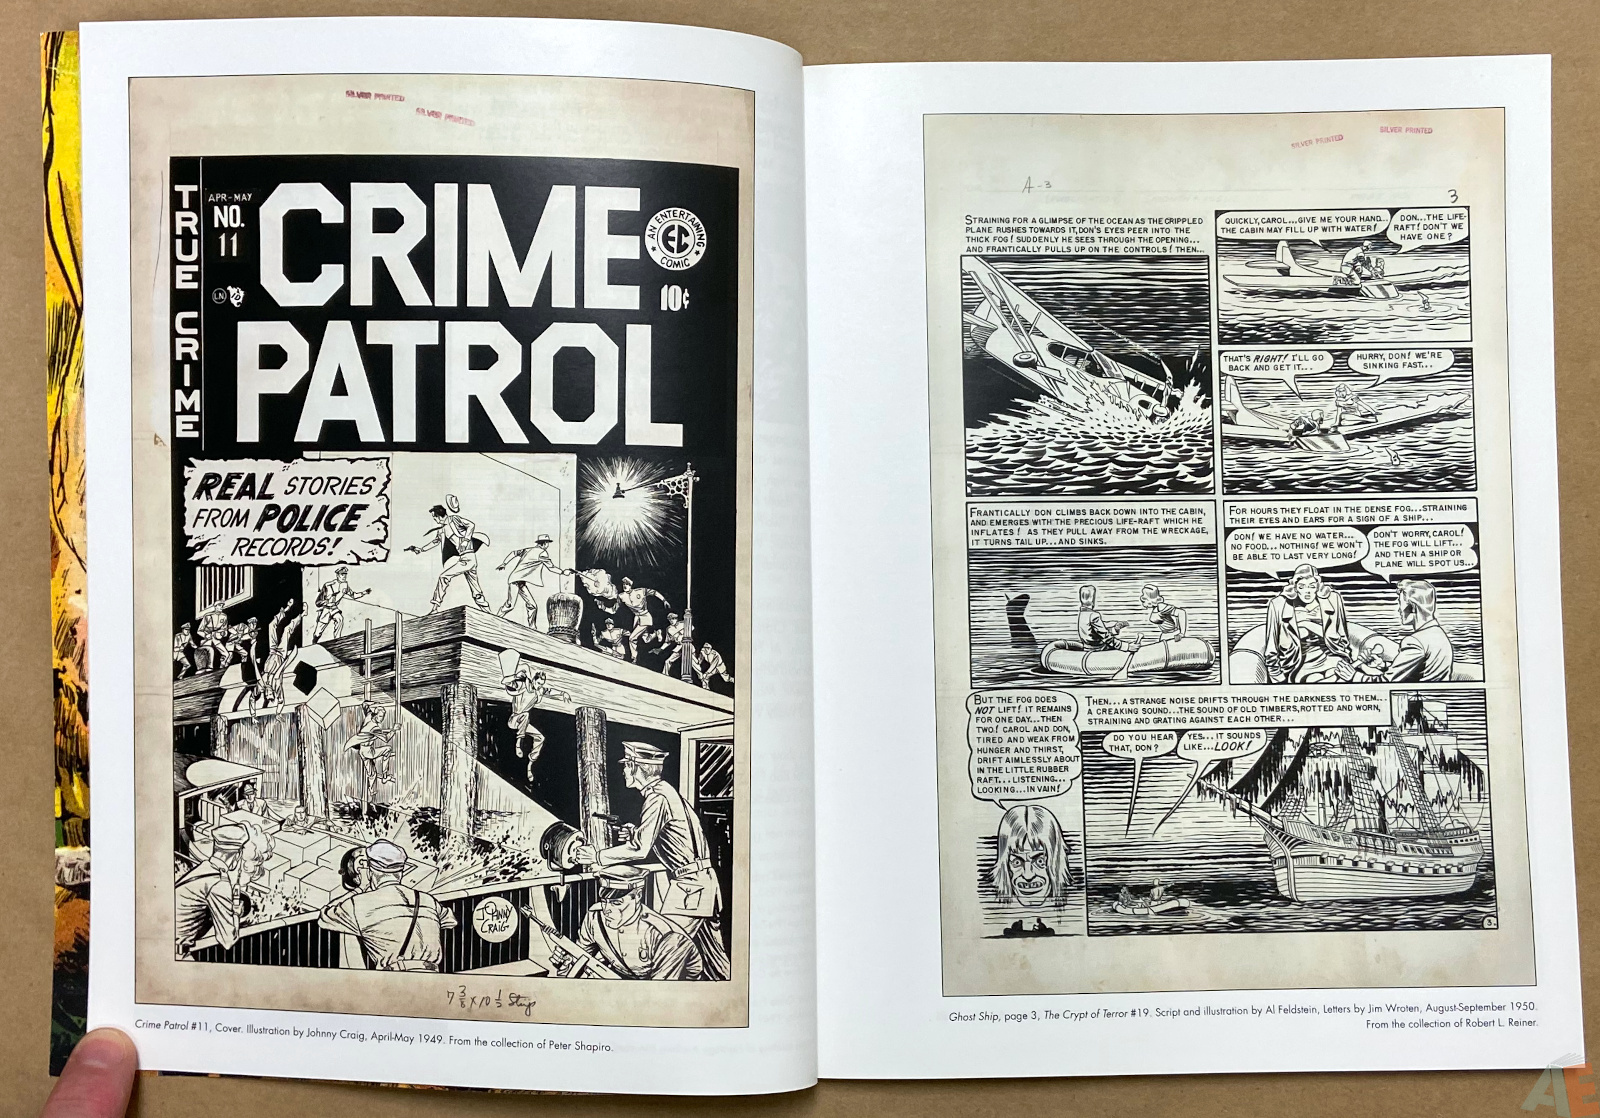 Tales From The Crypt Exhibition Catalog interior 2